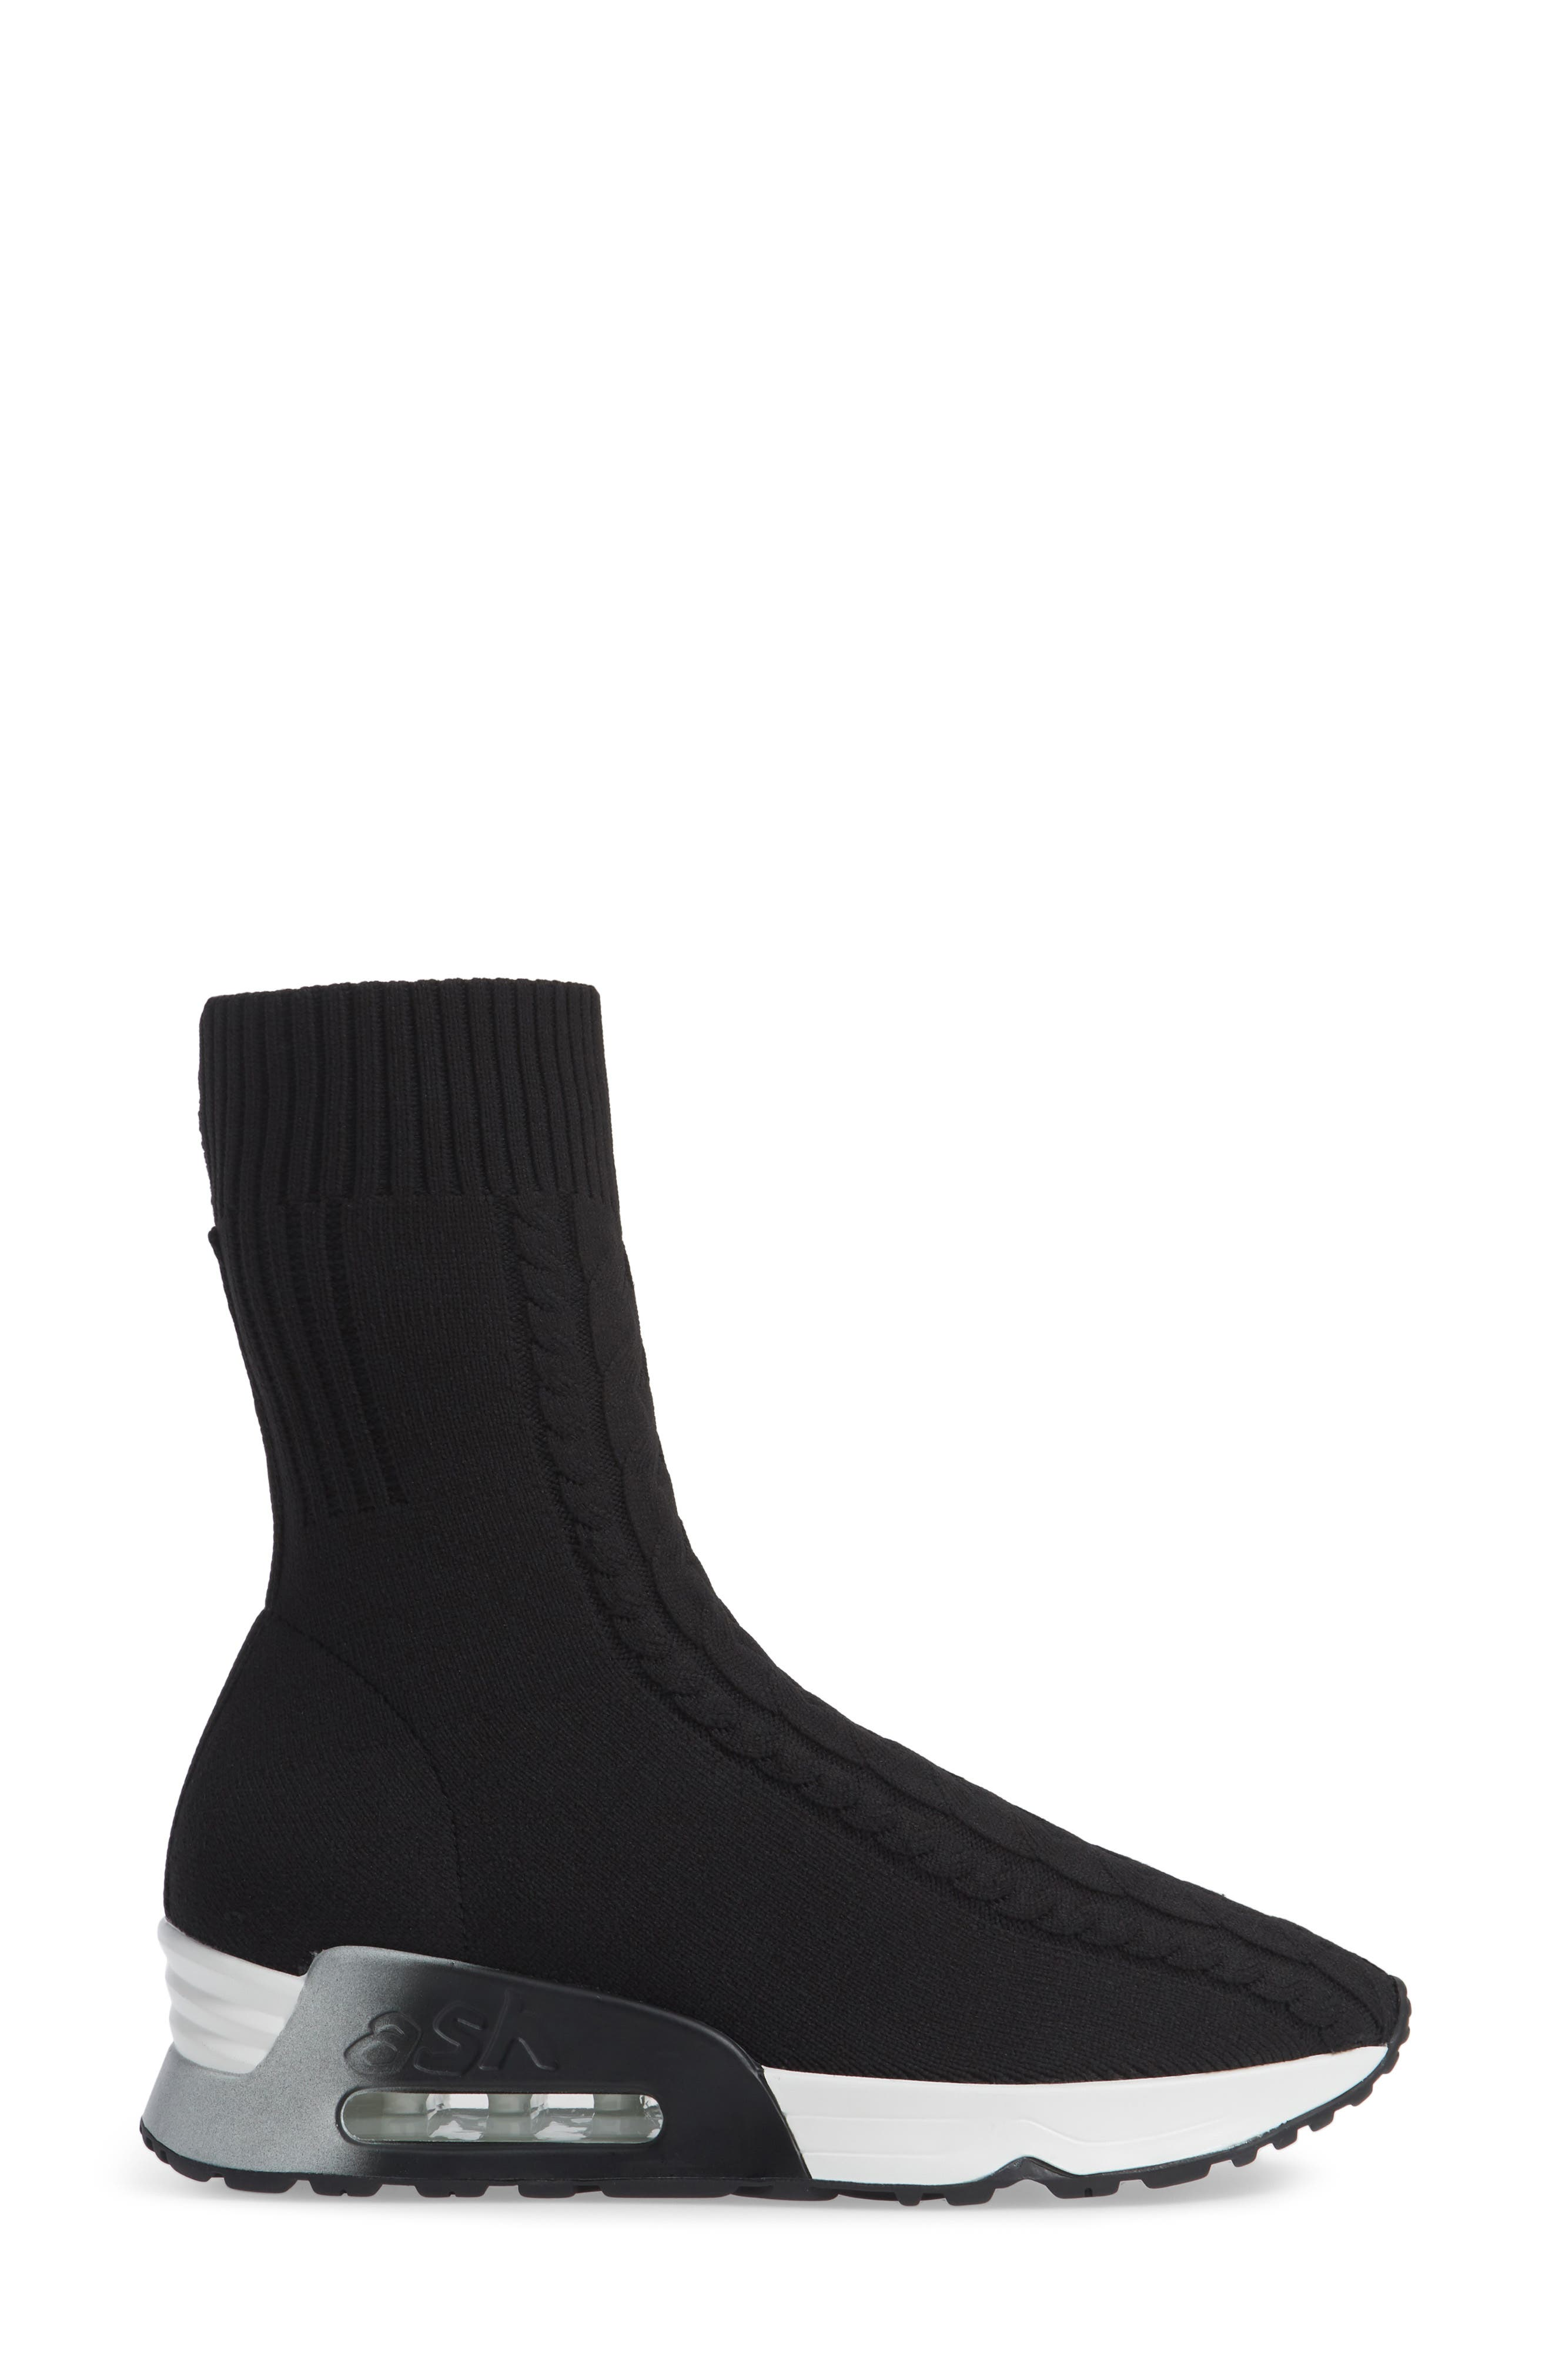 Liv Knit Sneaker Bootie,                             Alternate thumbnail 3, color,                             BLACK